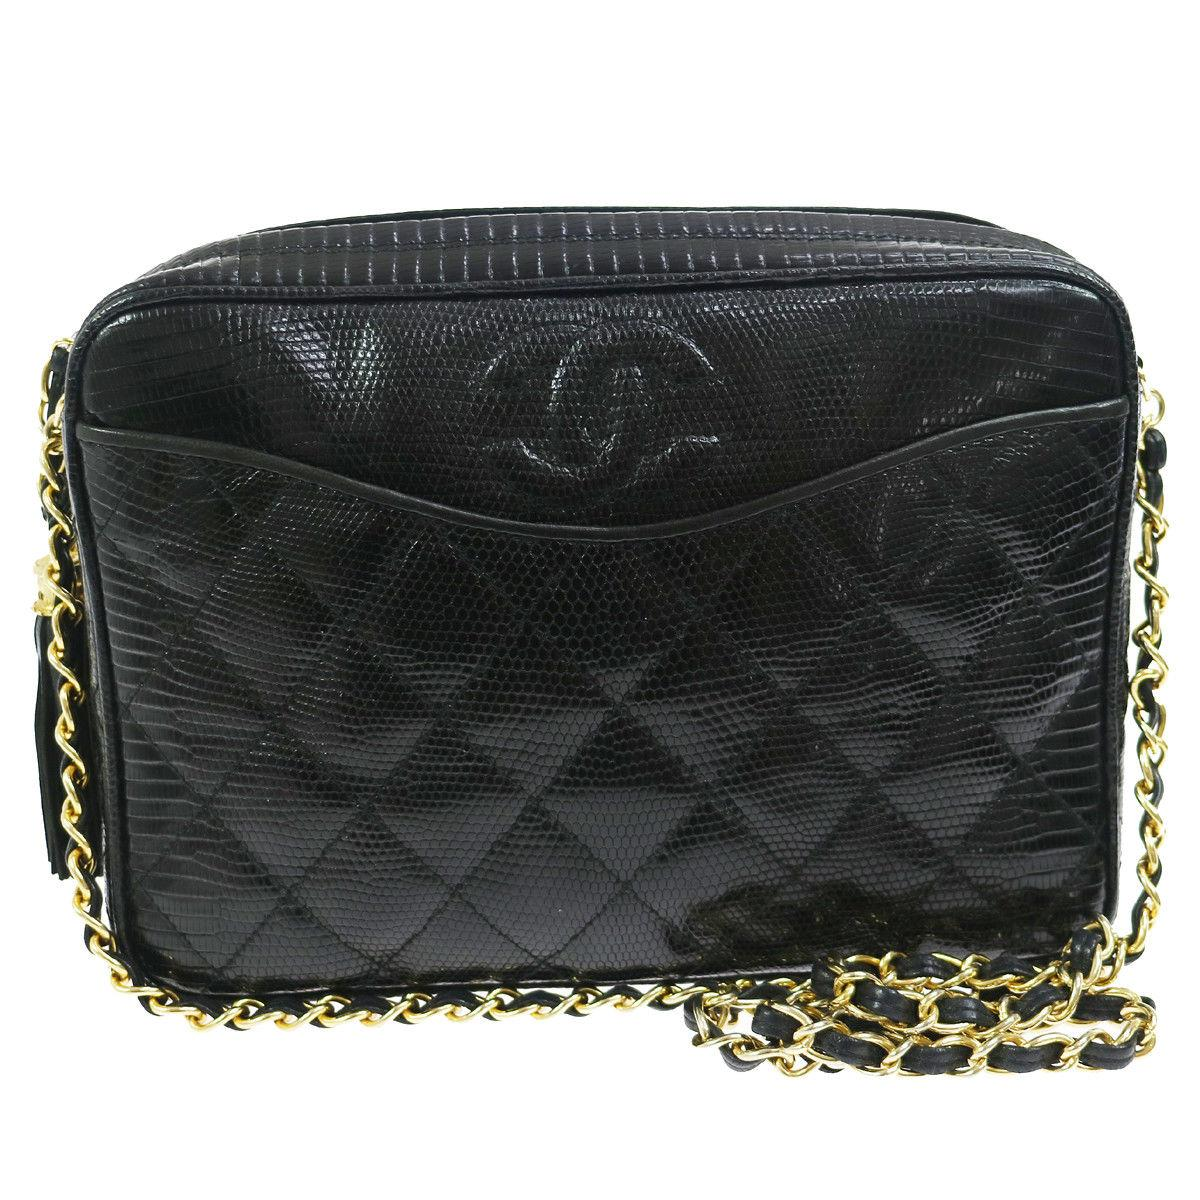 Vintage Chanel Evening Bags and Minaudières - 244 For Sale at 1stdibs -  Page 2 f2341f00da7f3